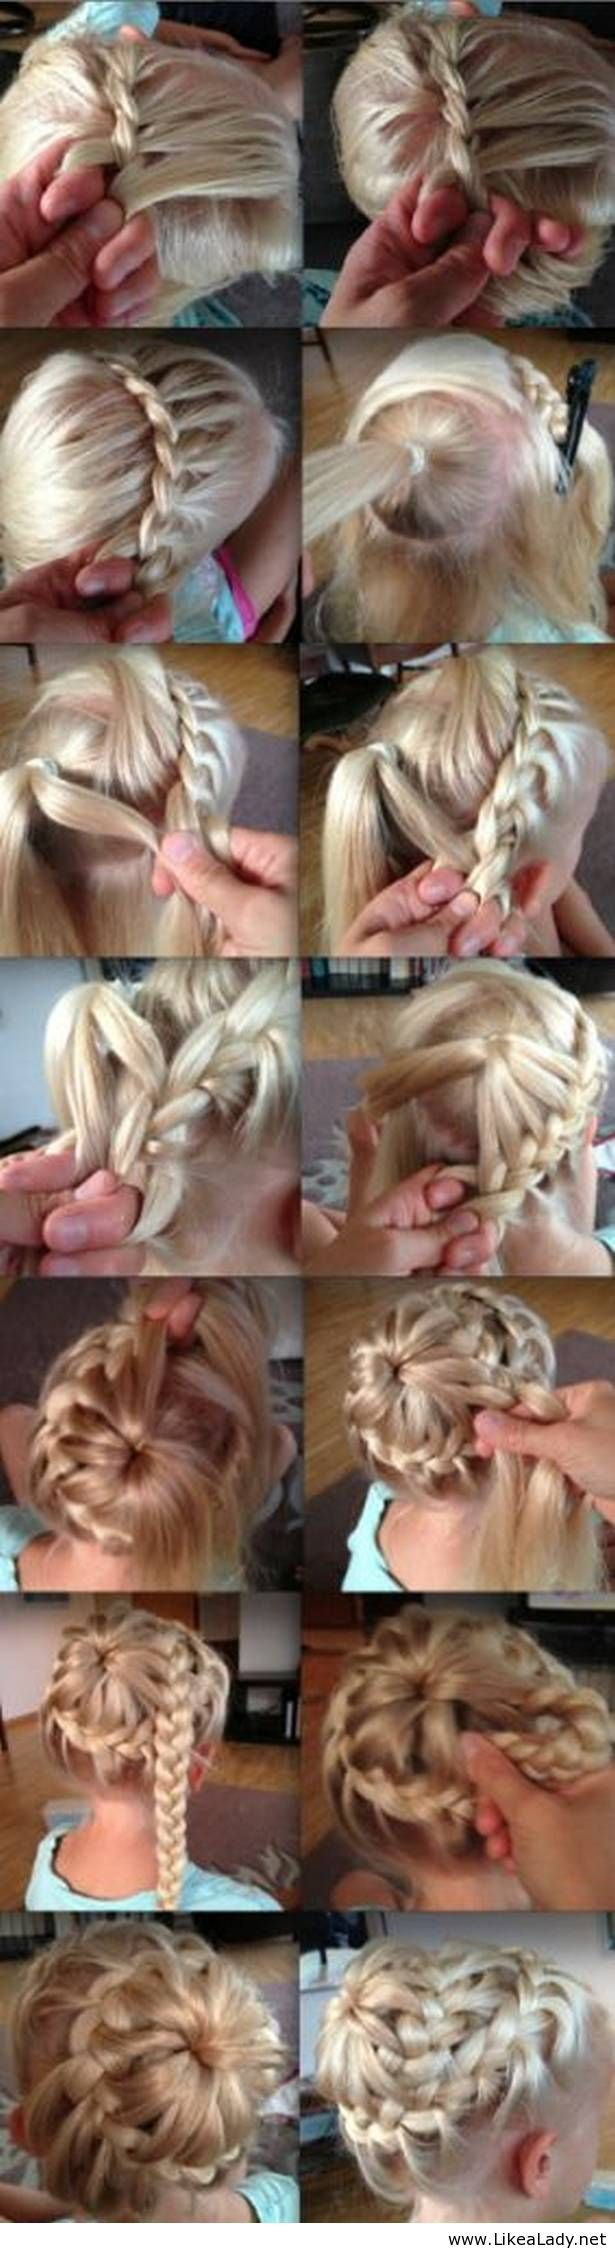 Wonderful Braided Hairstyles Step by Step Tutorial @Lisa Phillips-Barton Phillips-Barton Phillips-Barton Phillips-Barton Phillips-Barton Phillips-Barton Johnson- Knot & Veil